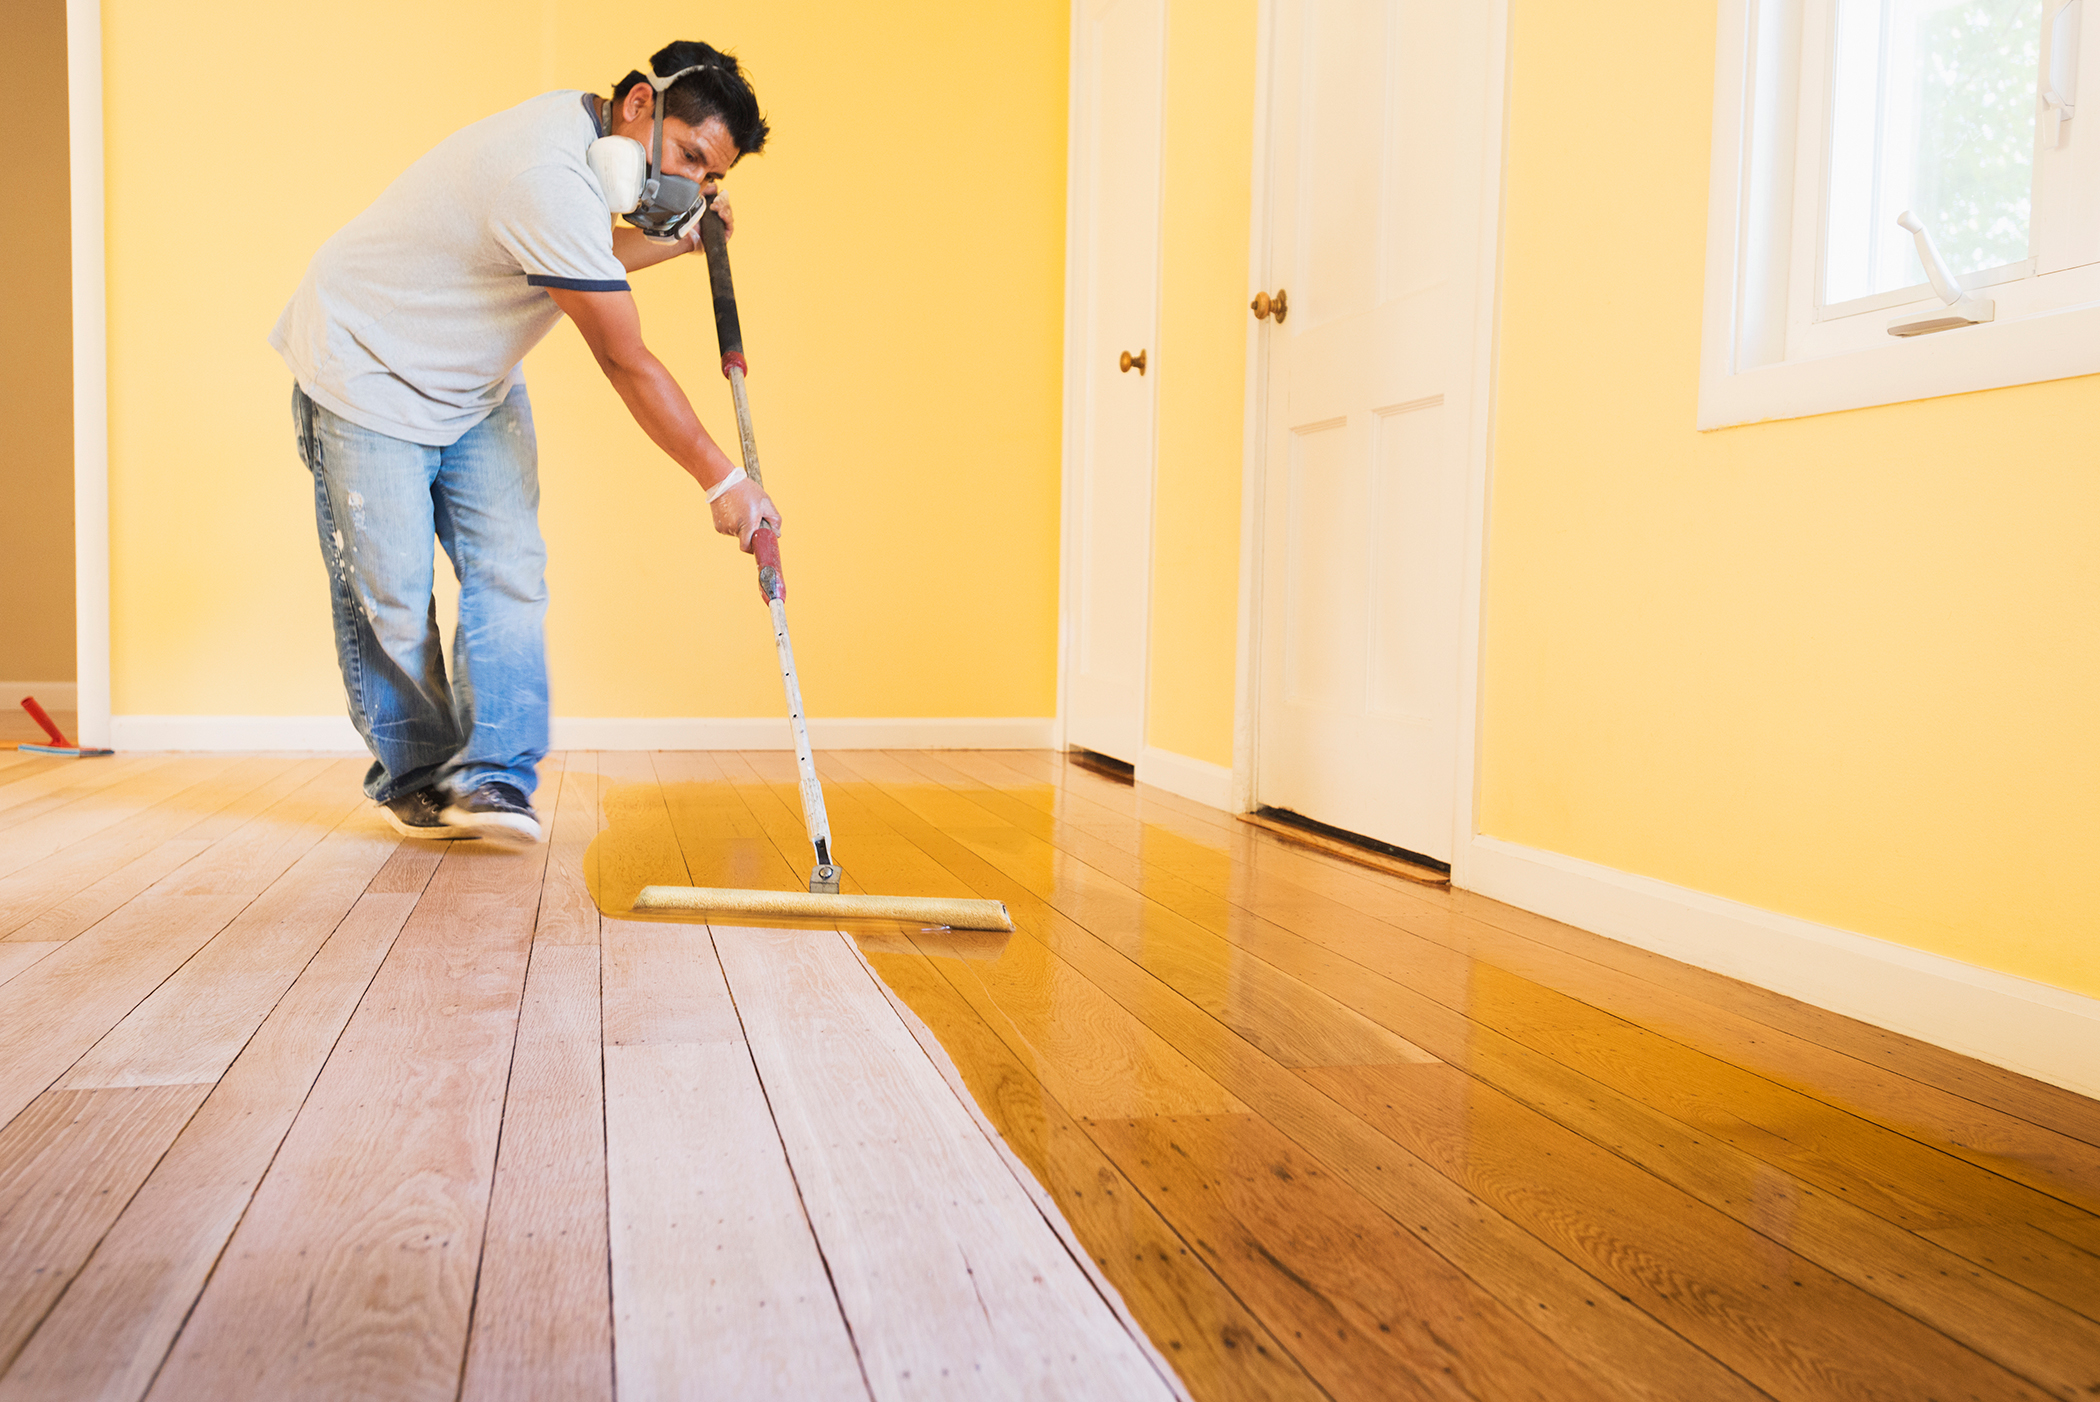 hardwood floor specialist, West Coast Floor Companylejo CA 94590